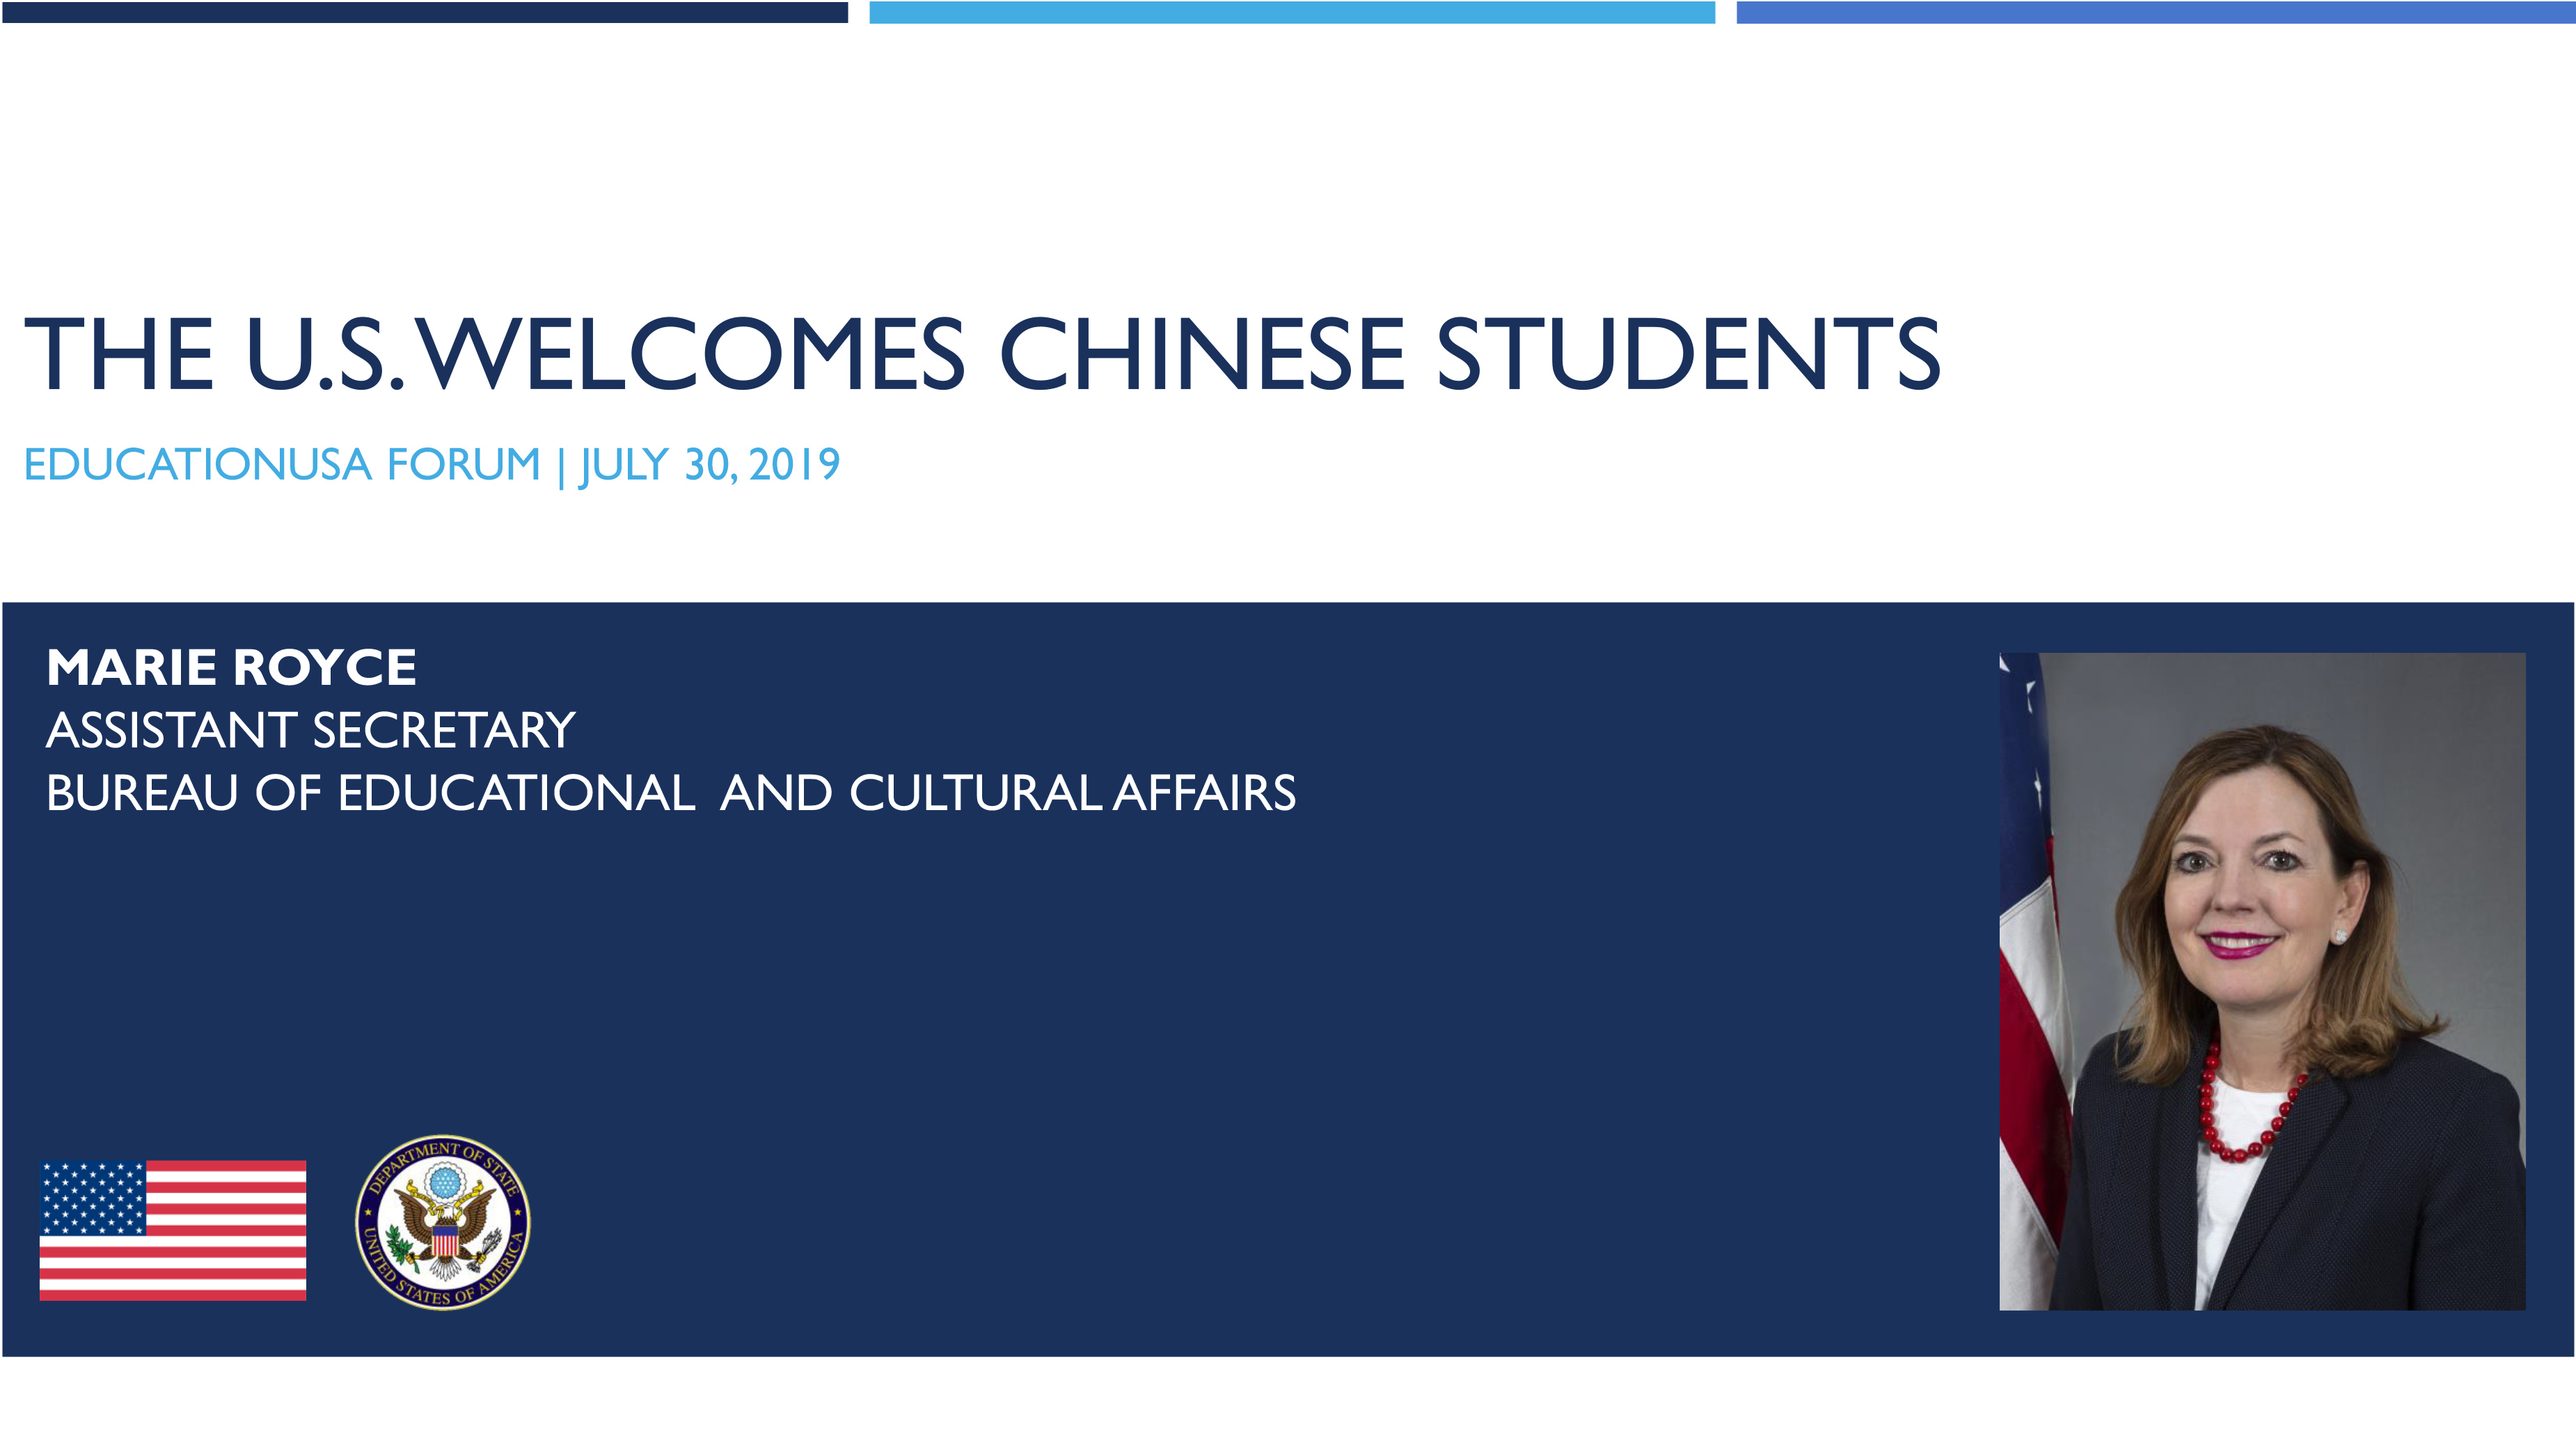 United States Welcomes Chinese Students